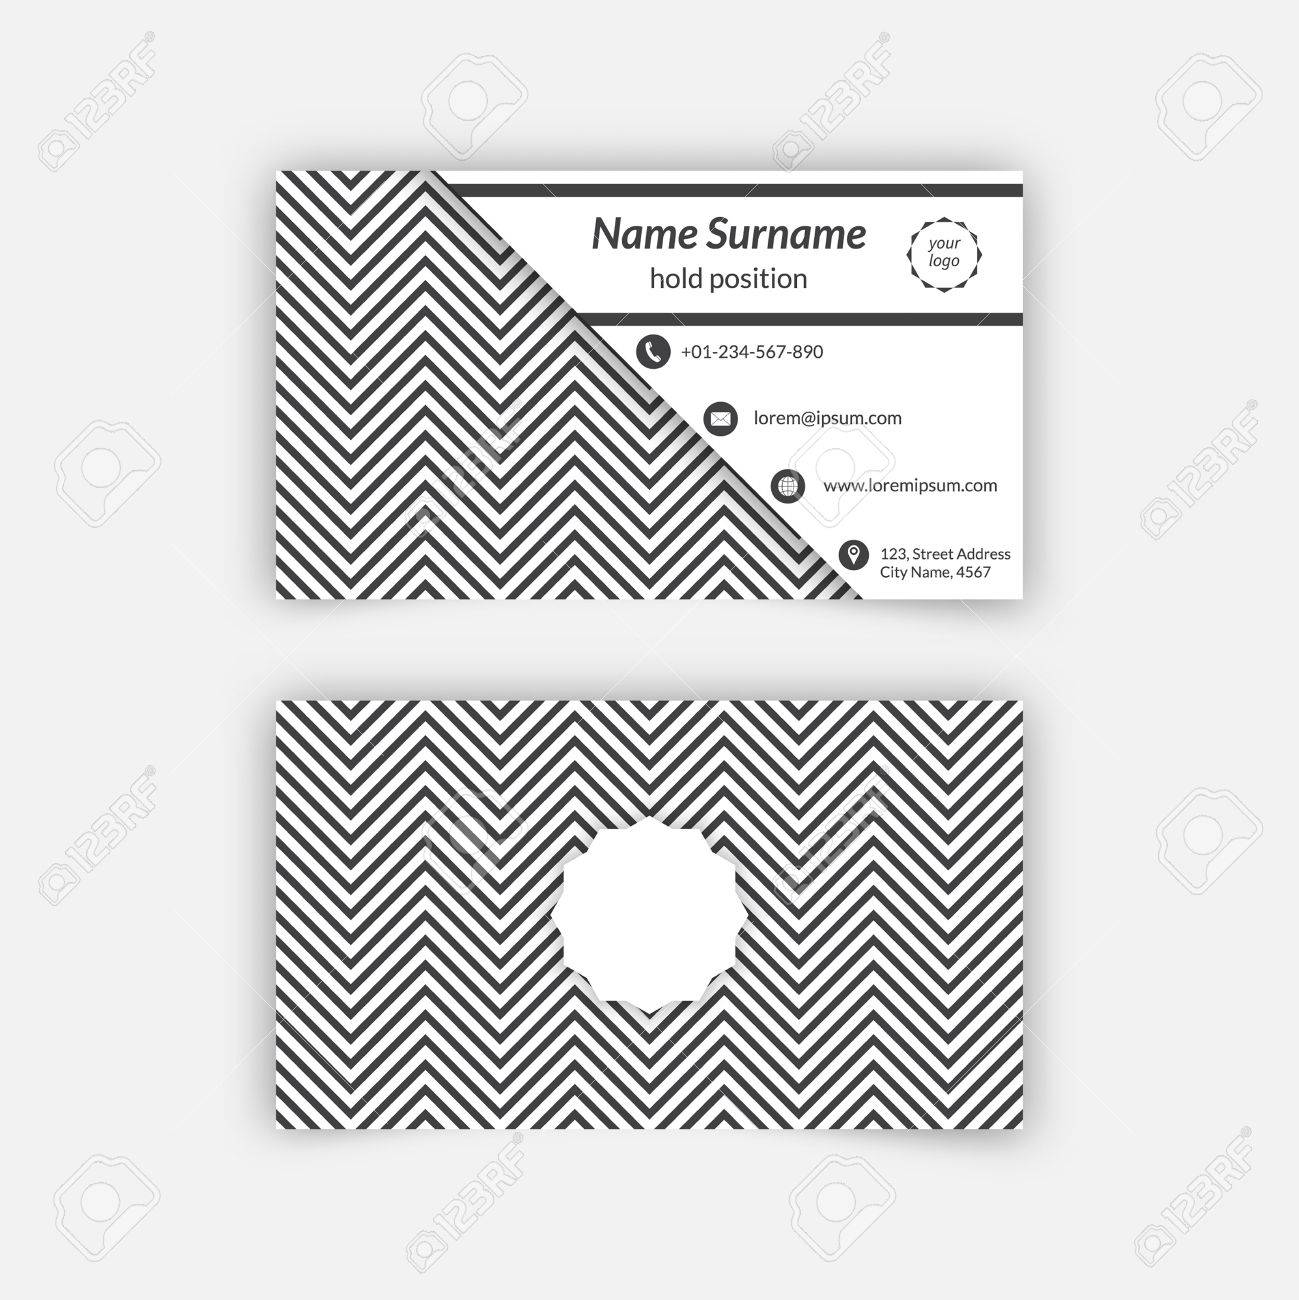 business card blank template with textured background from zigzag